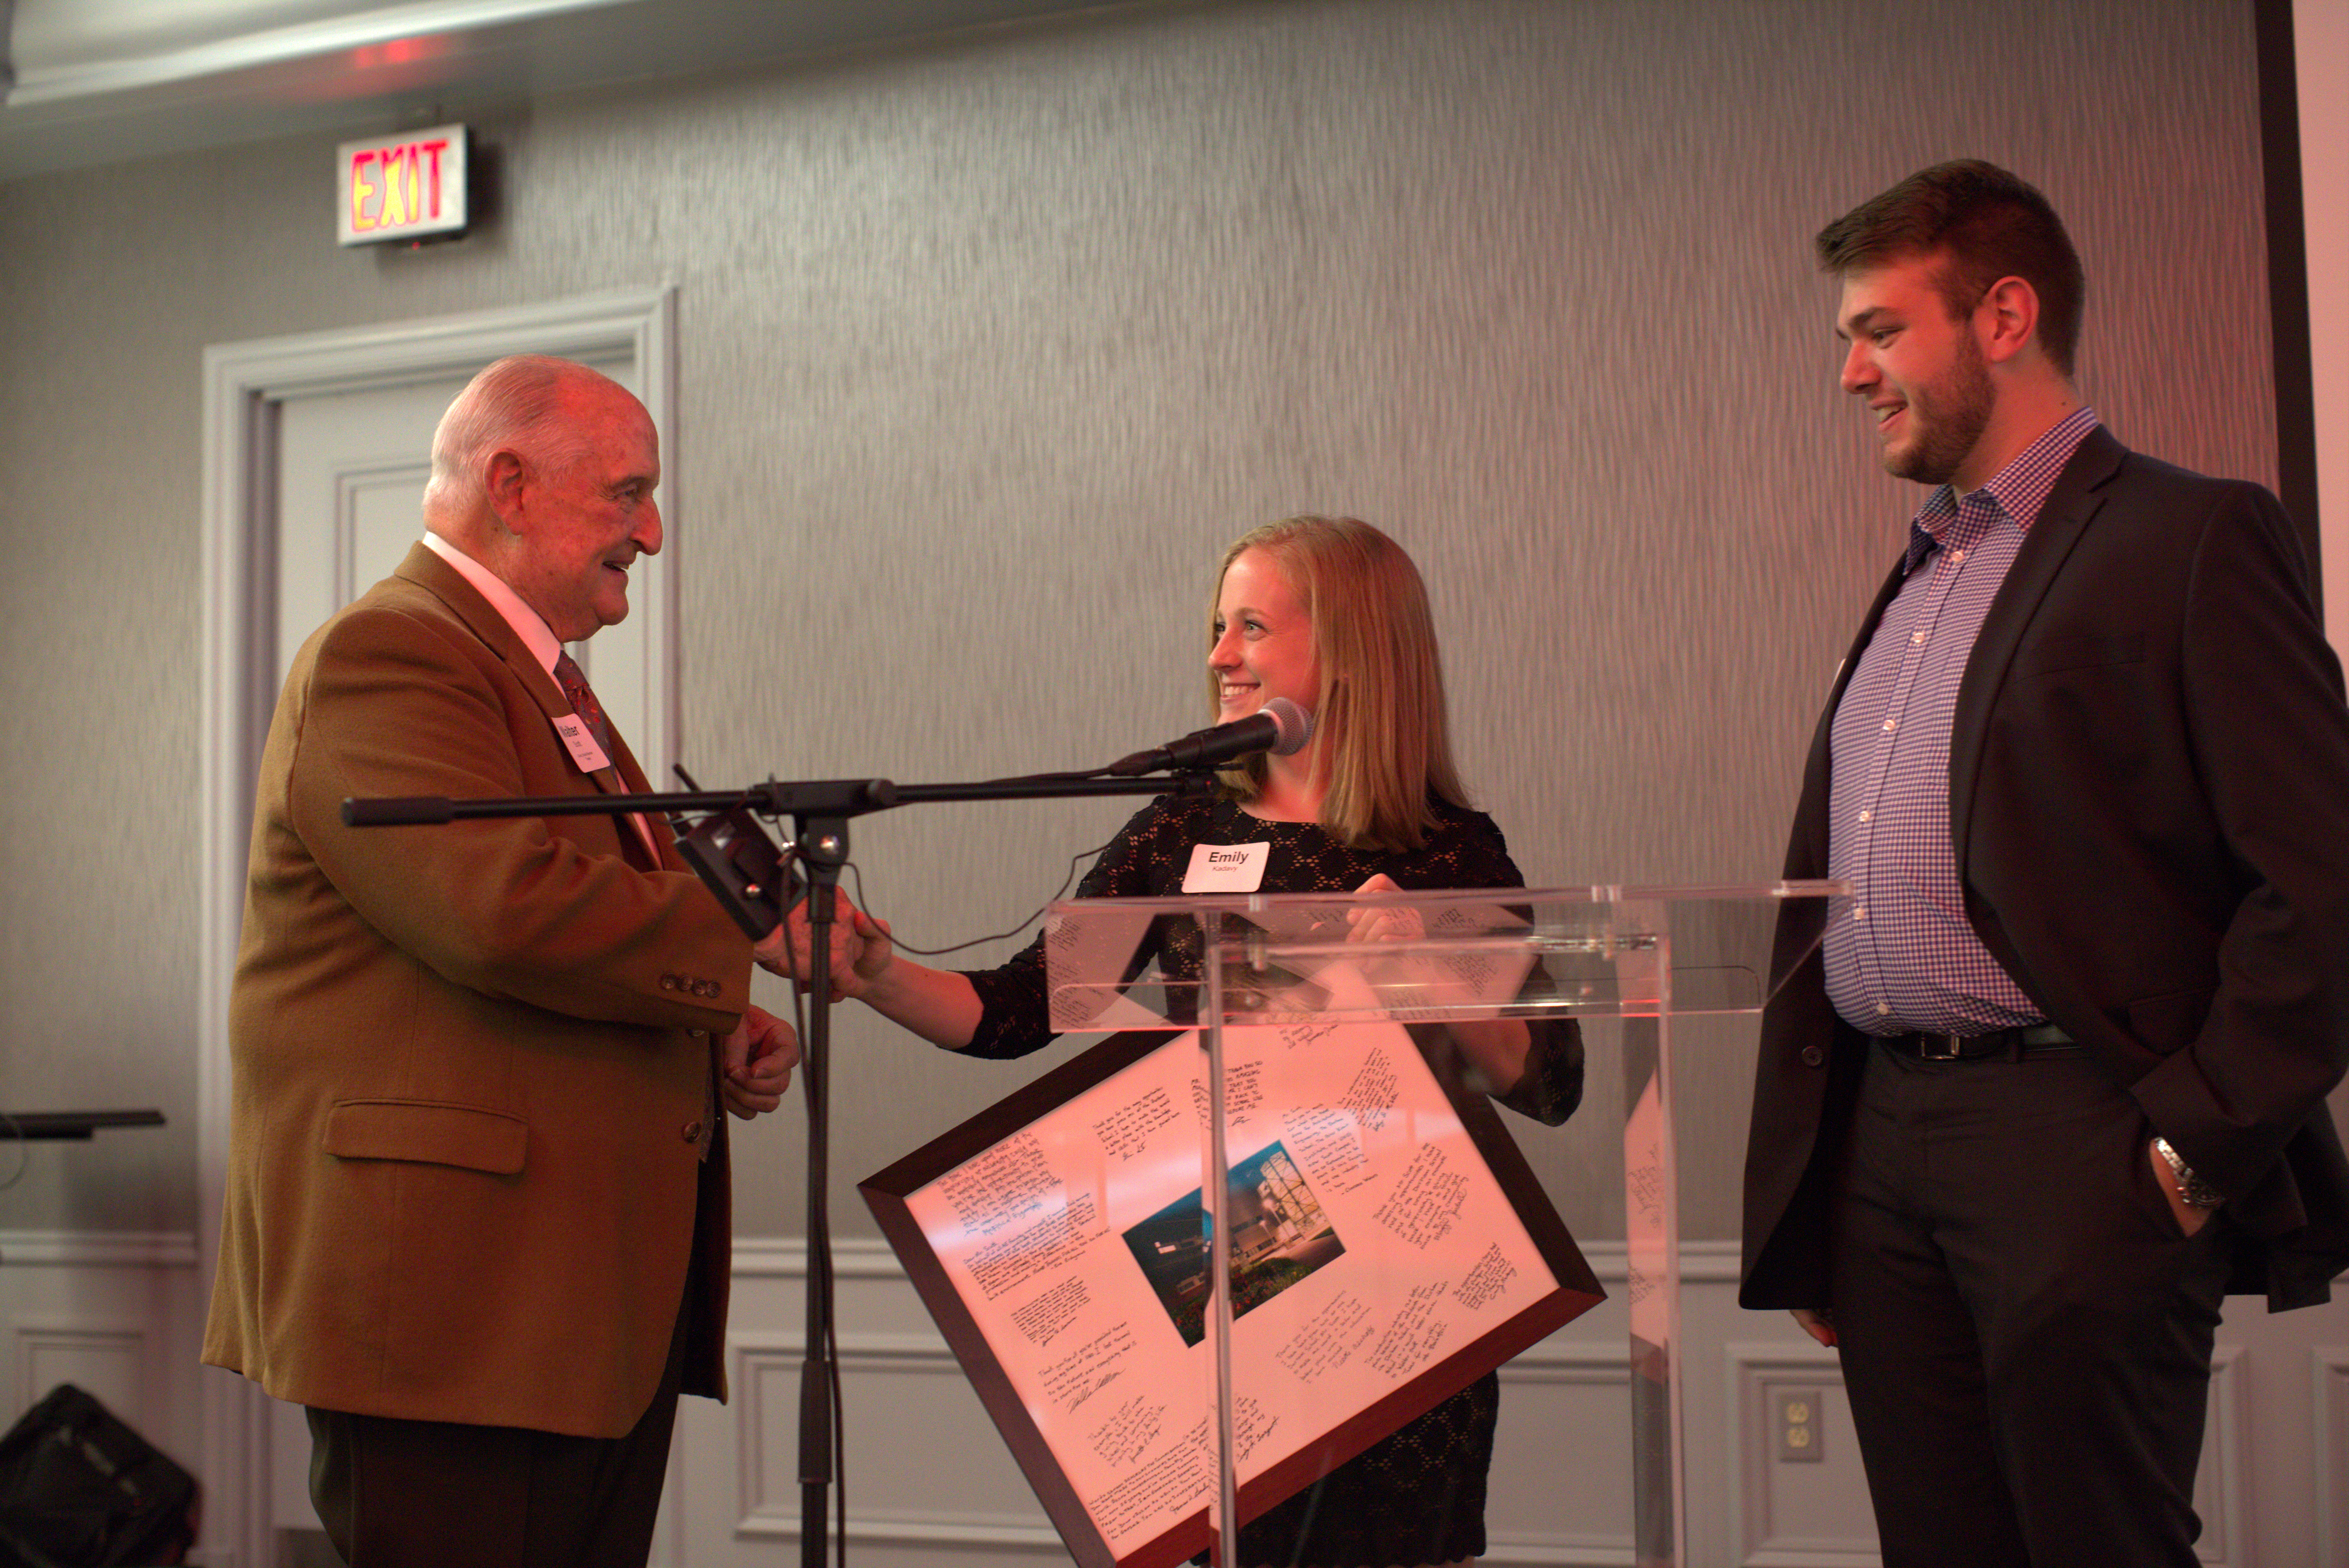 Walter Scott Jr. (pictured left) accepts a thank you memento from Scott Scholars Emily Kadavy (pictured middle) and Cody Largent (pictured right).